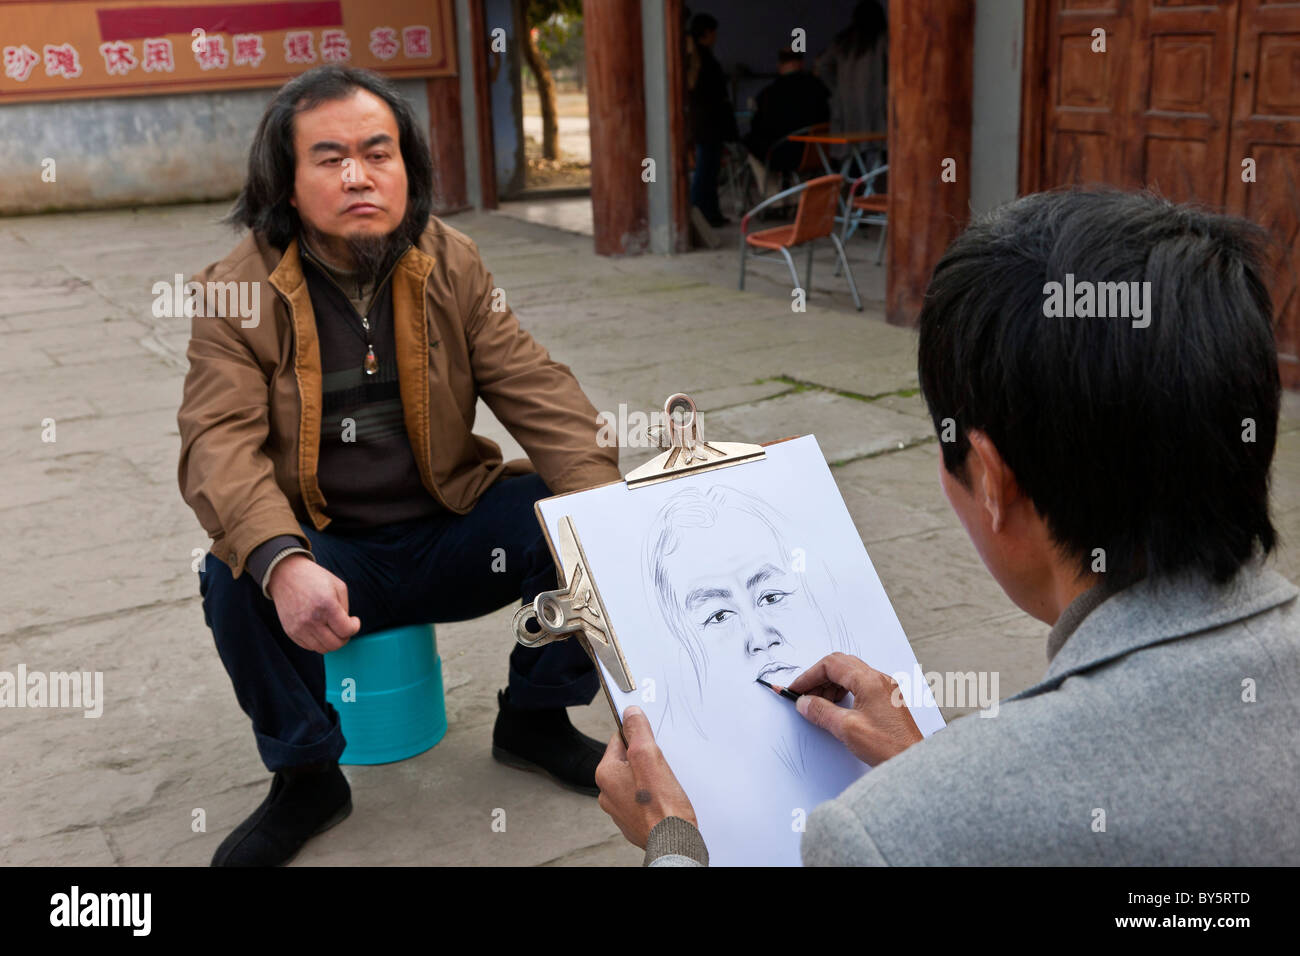 Street artist making a pencil sketch of a man in Huanglongxi, near Chengdu, Sichuan Province, China. JMH4349 - Stock Image